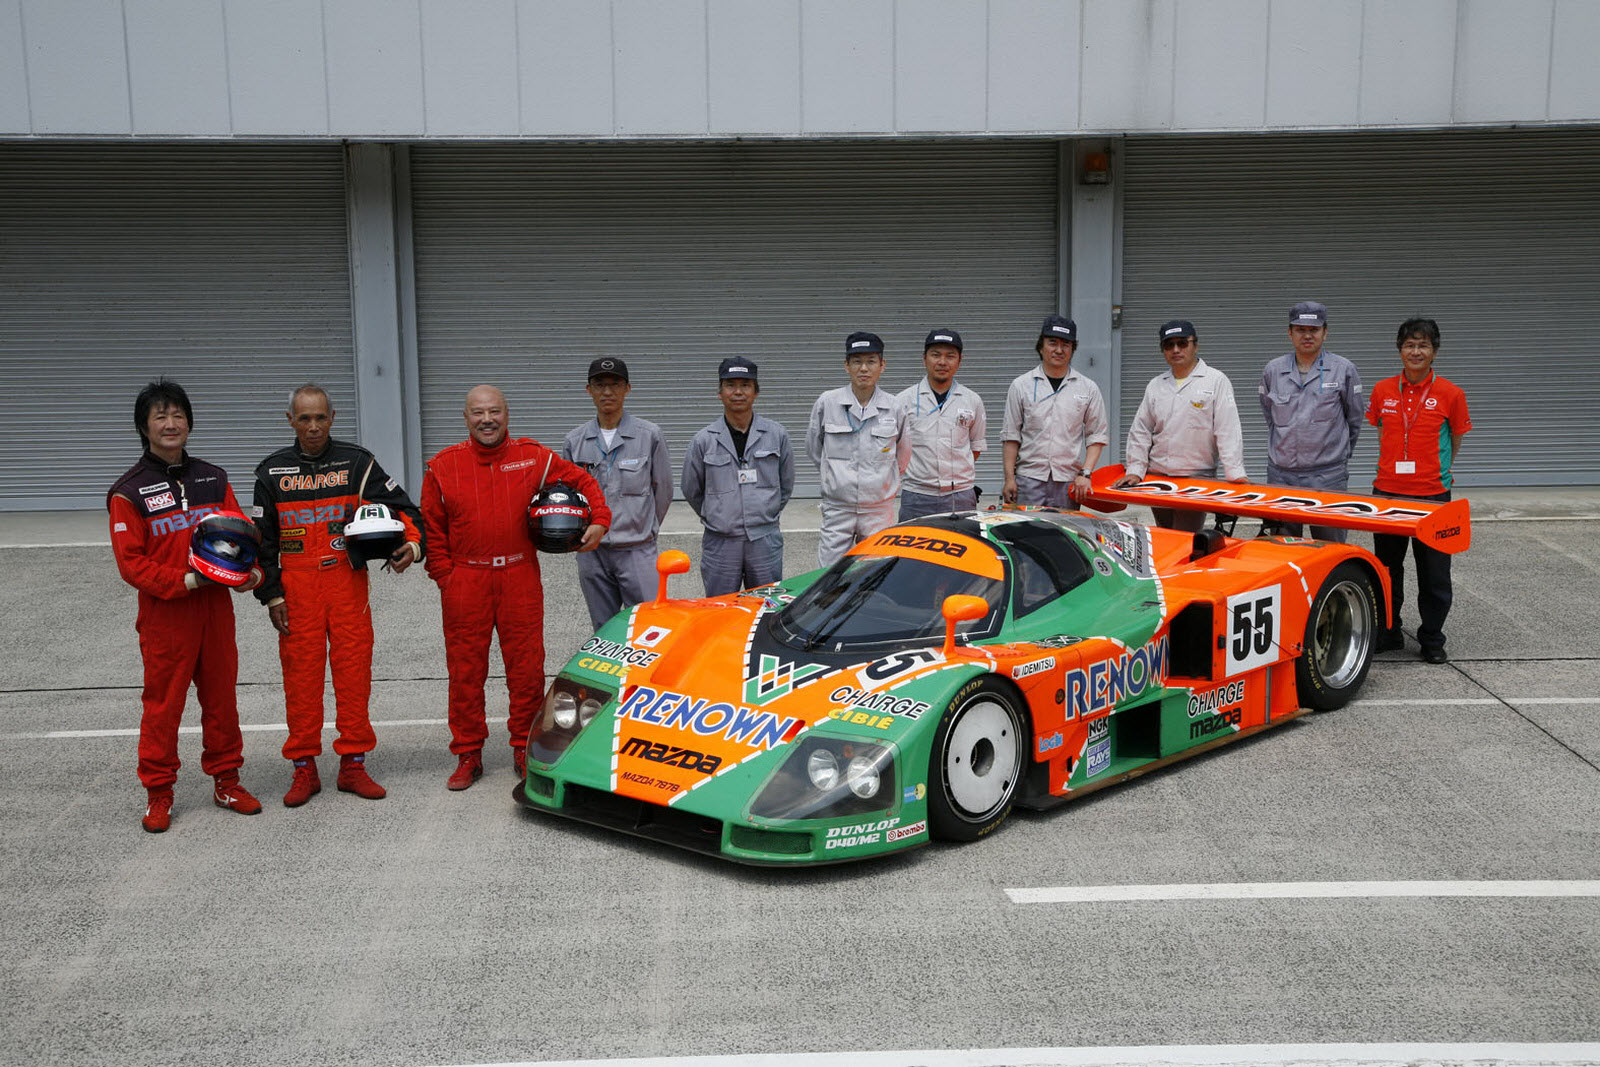 Mazda 787B 1991 Winning car returns to le mans after 20 years ...